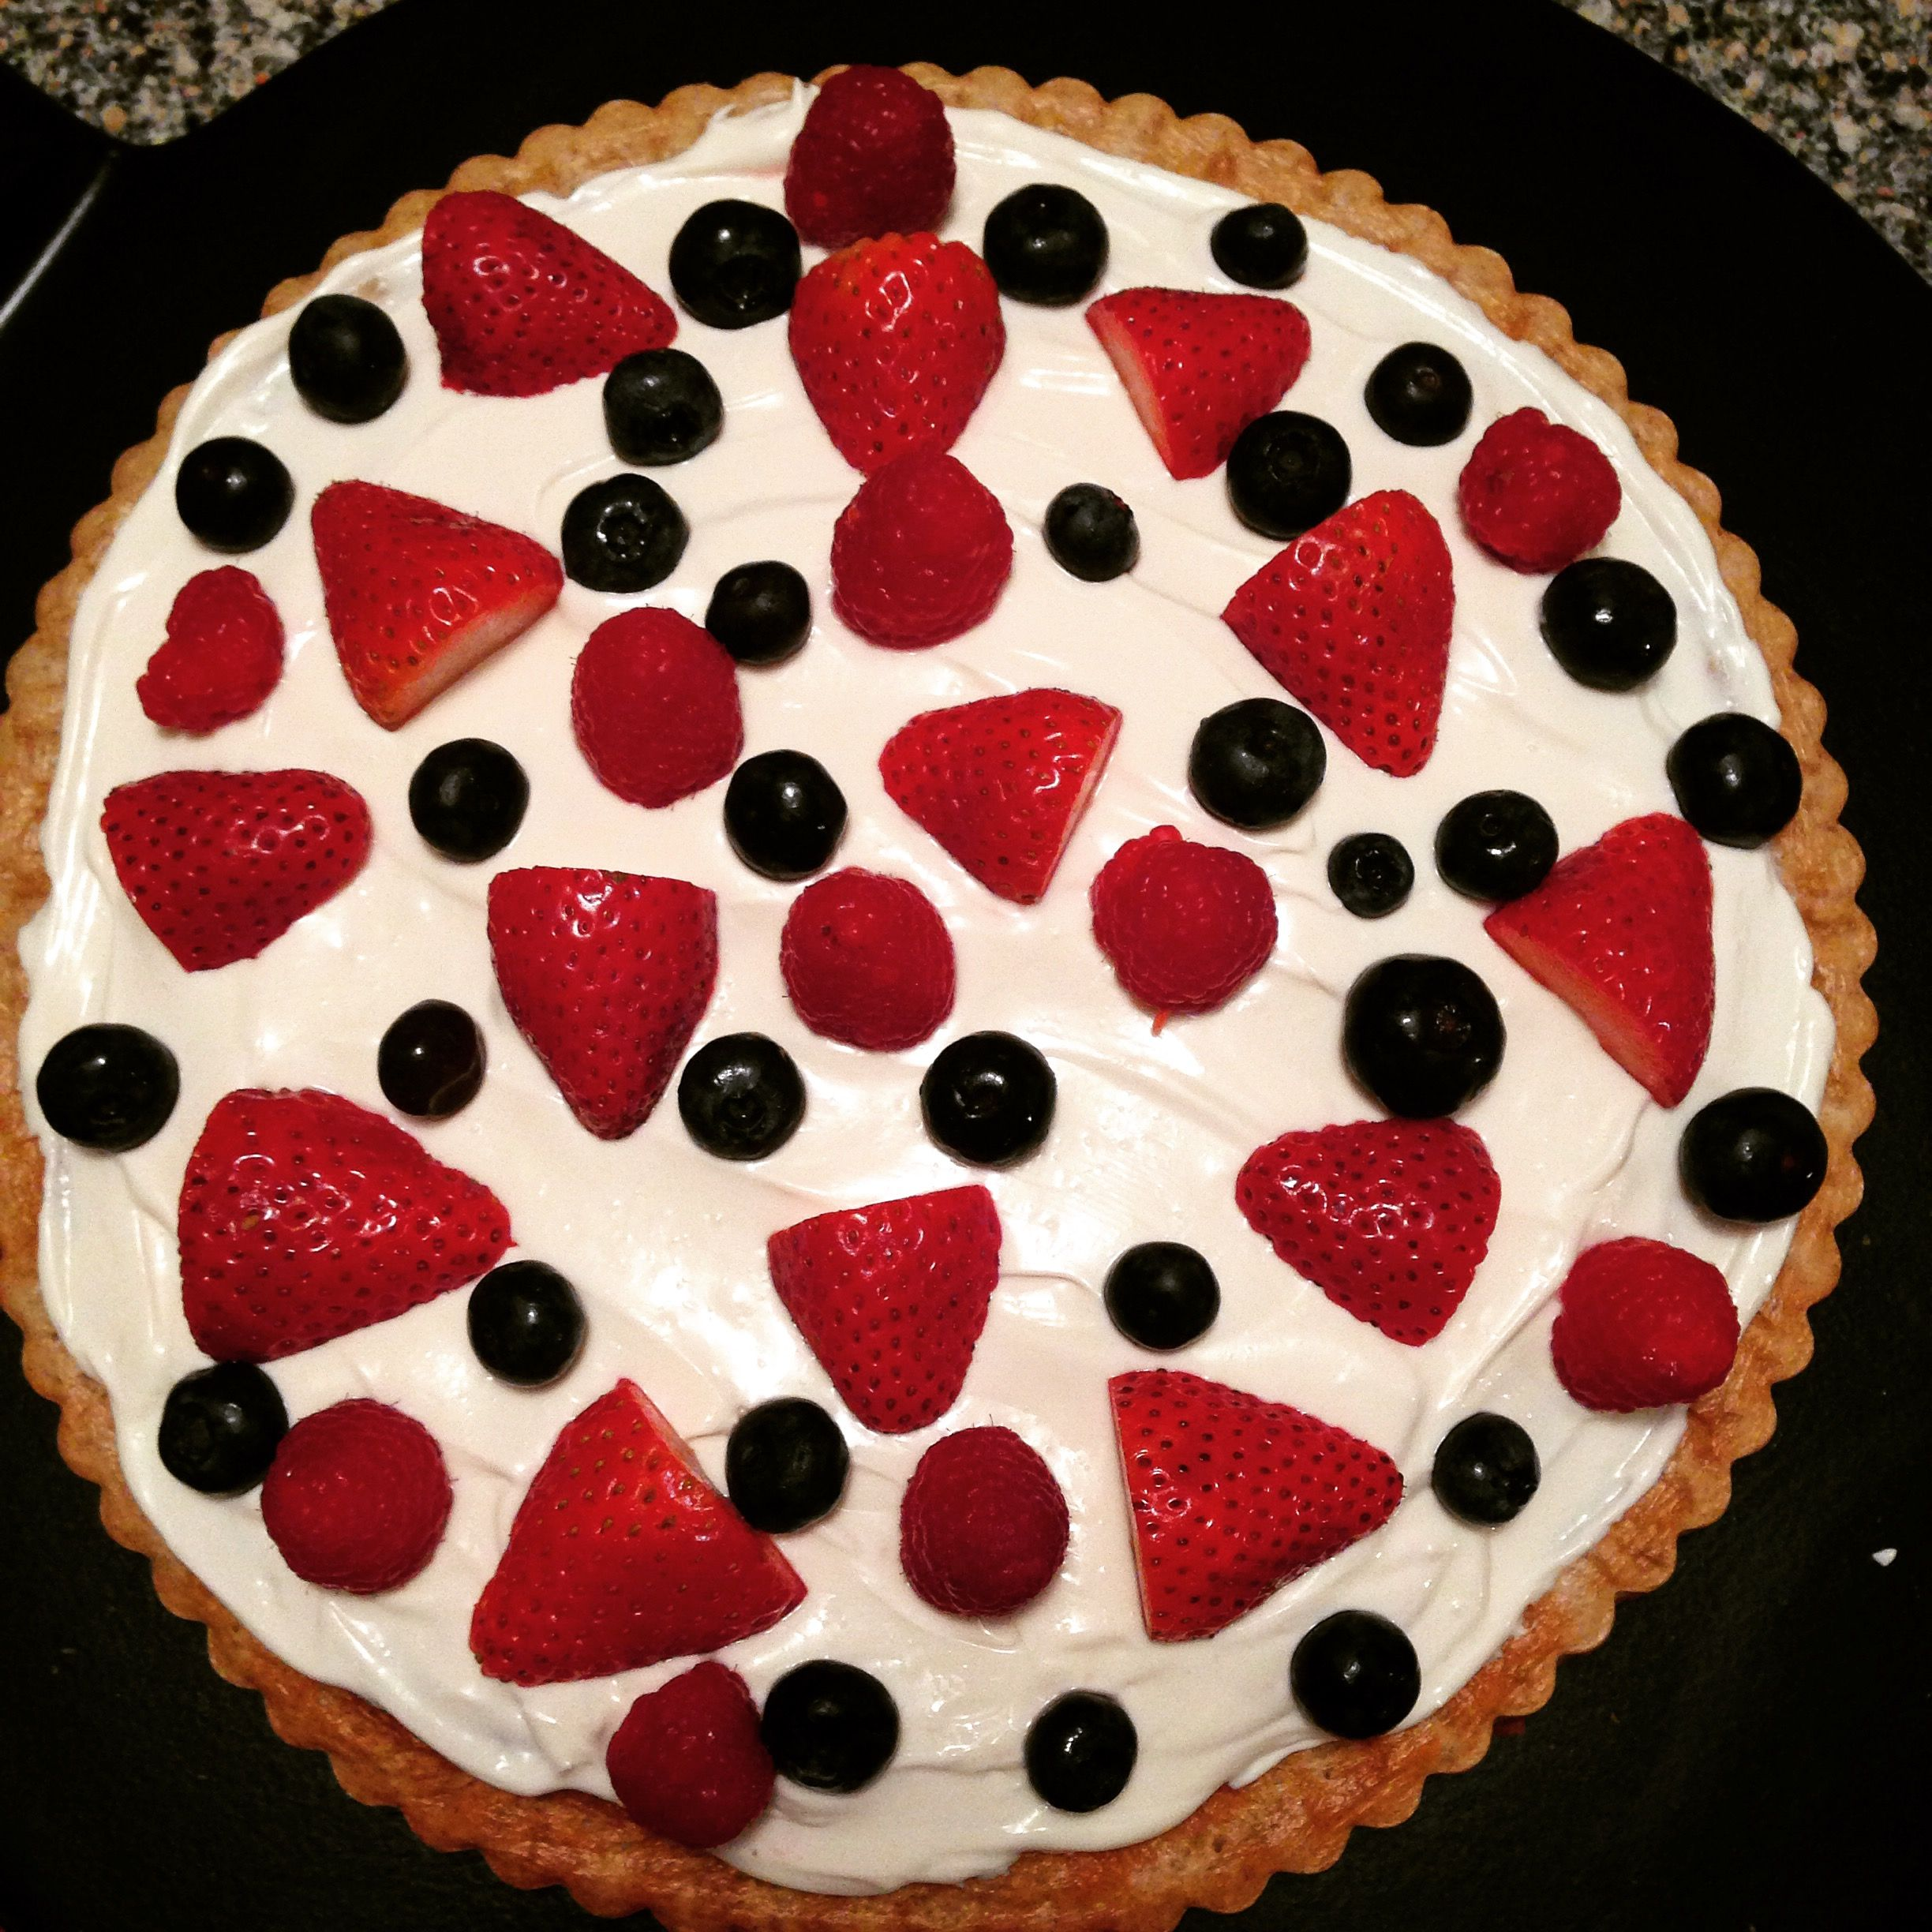 Beautiful dessert pizza! #dessert #fruit #fresh #yum #sweet #food #foodie #cook #baked